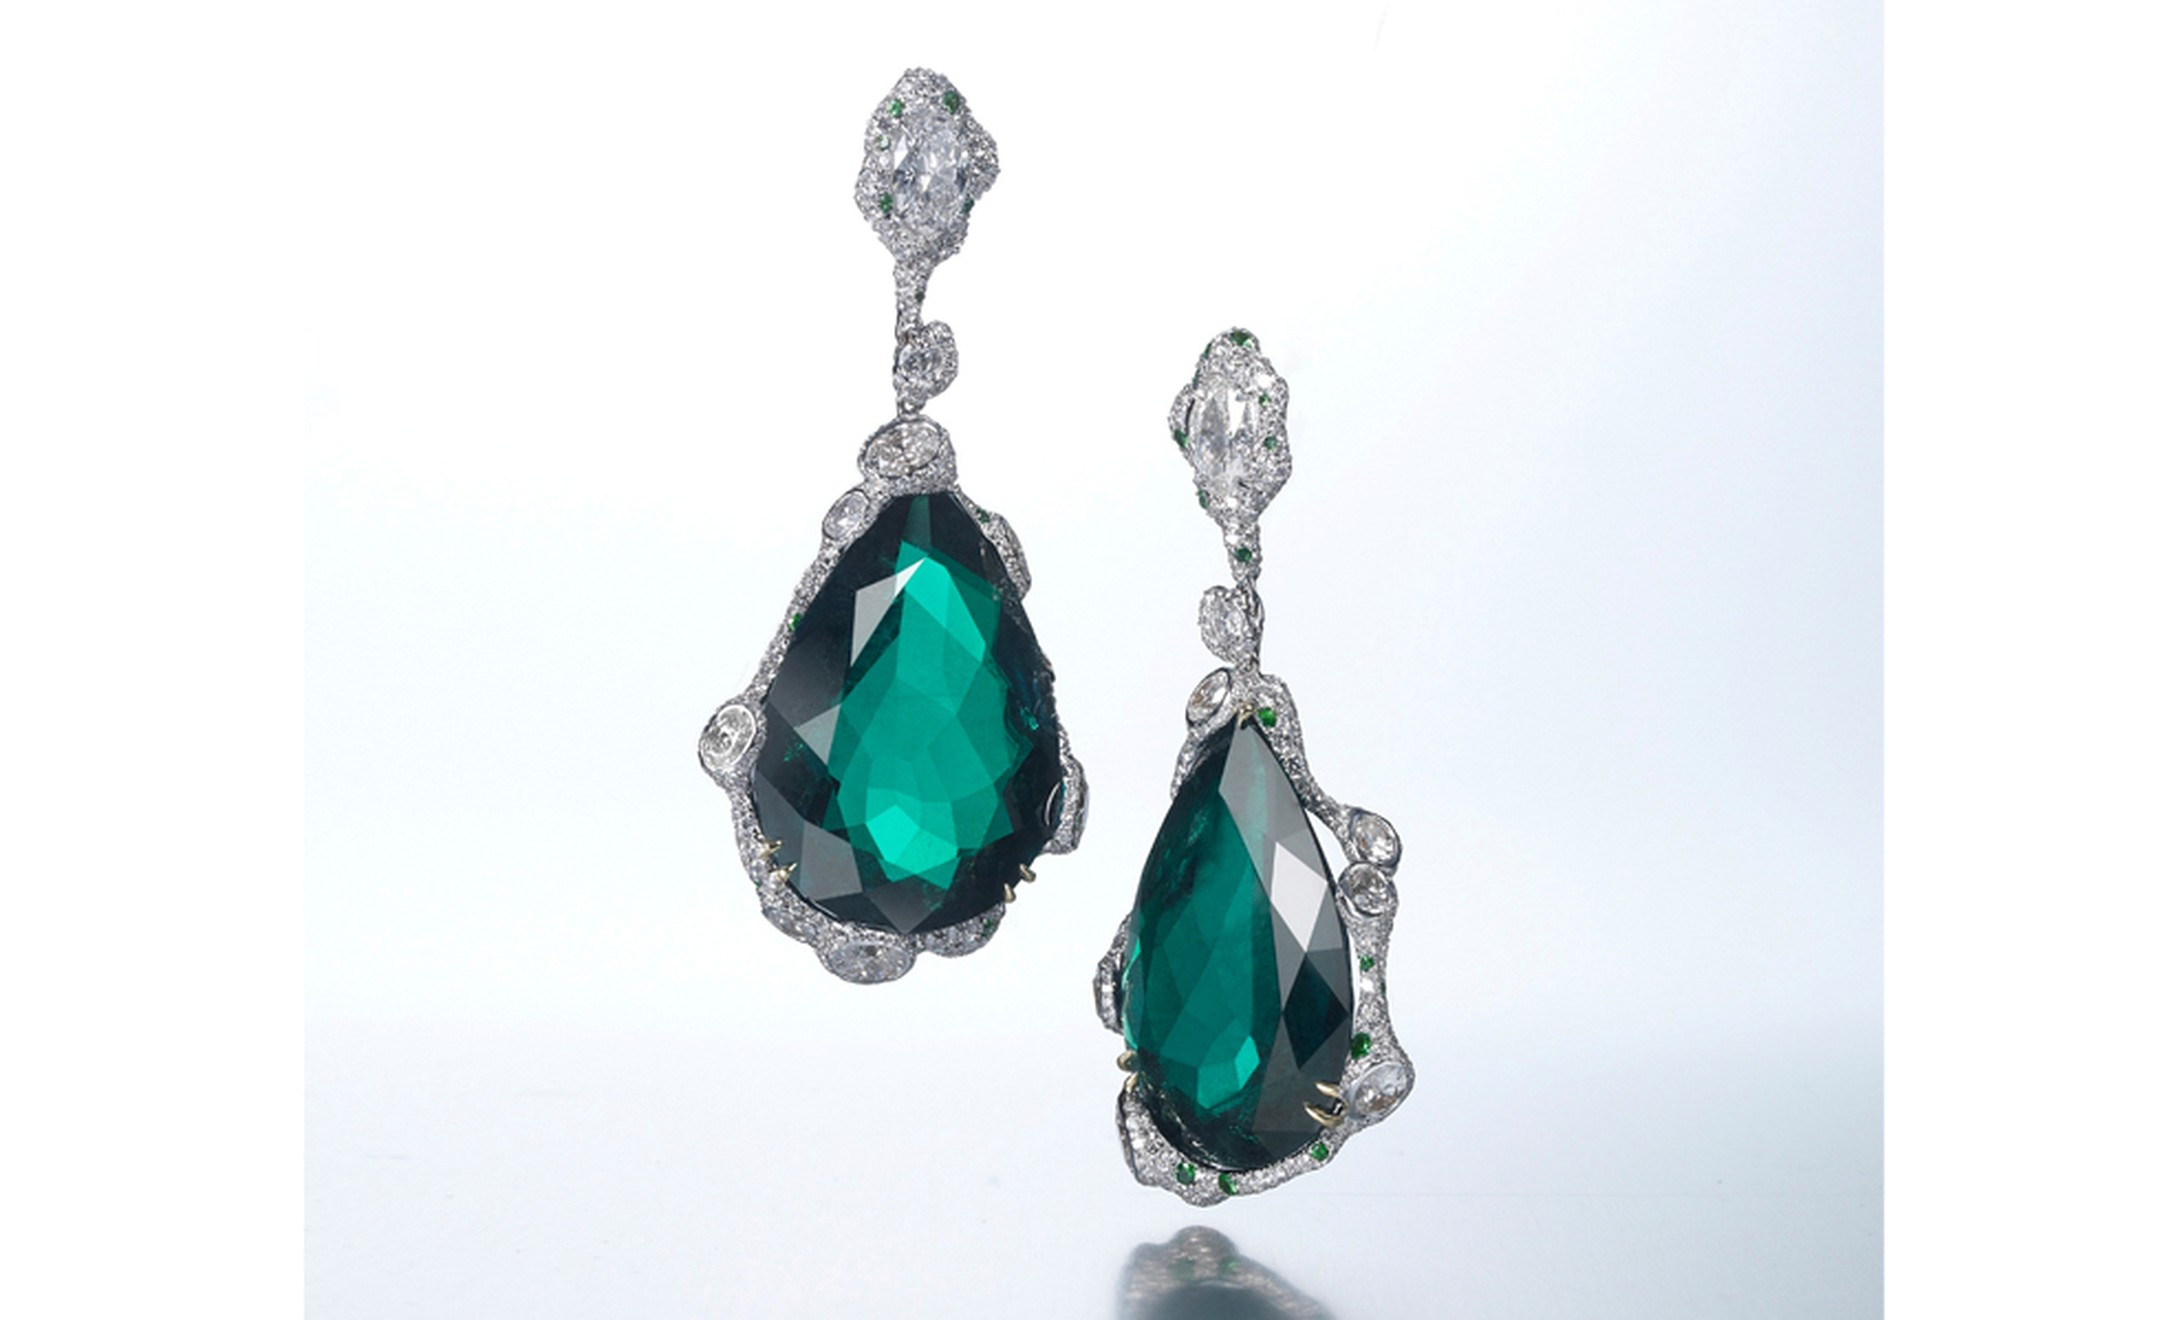 CINDY CHAO, The Art Jewel, Black Label Masterpiece Emerald Drop Earrings. Drop earrings with emerald (63cts) highlighted by diamonds set in 18kt white gold.